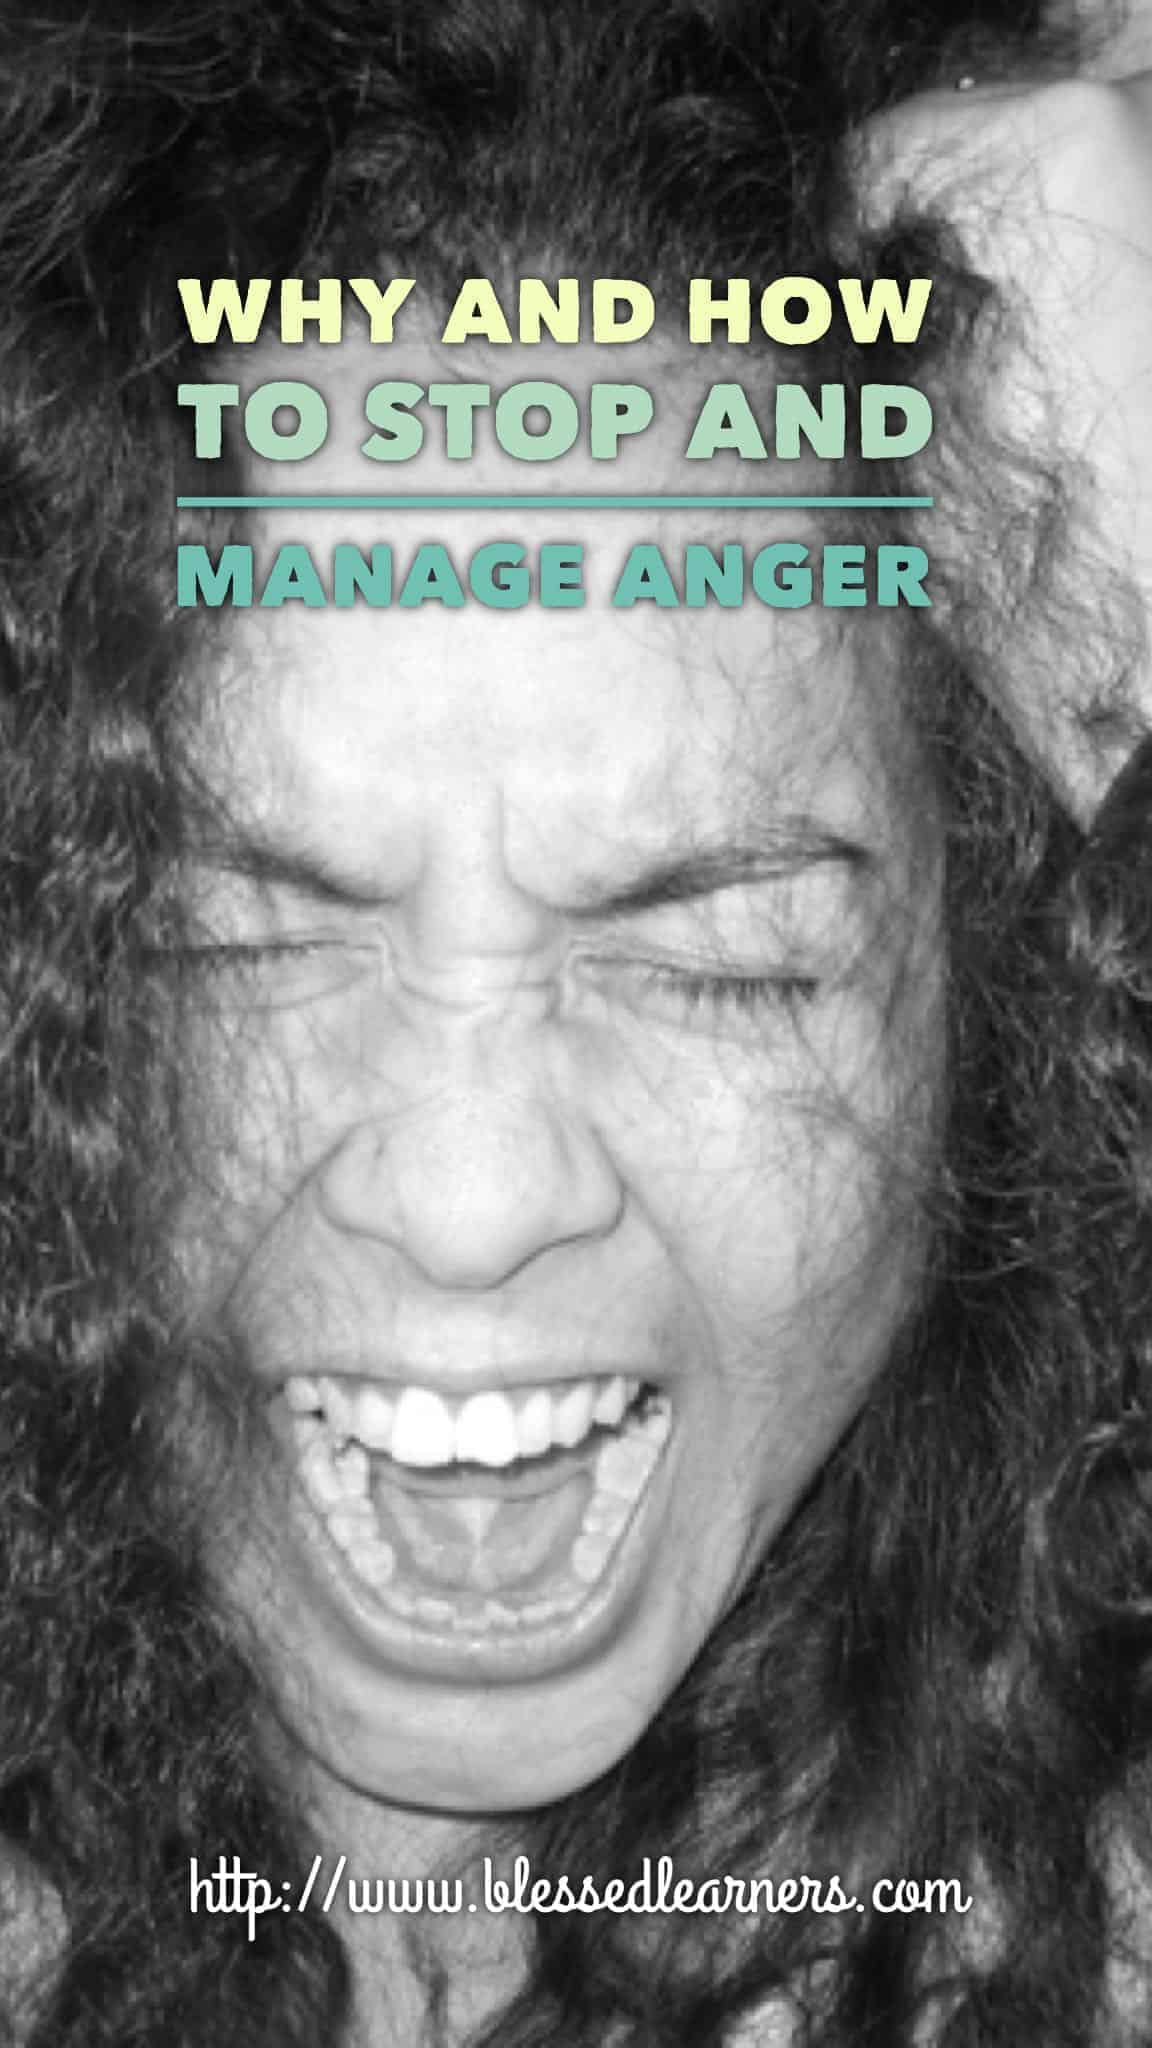 Why and How to Stop and Manage Anger